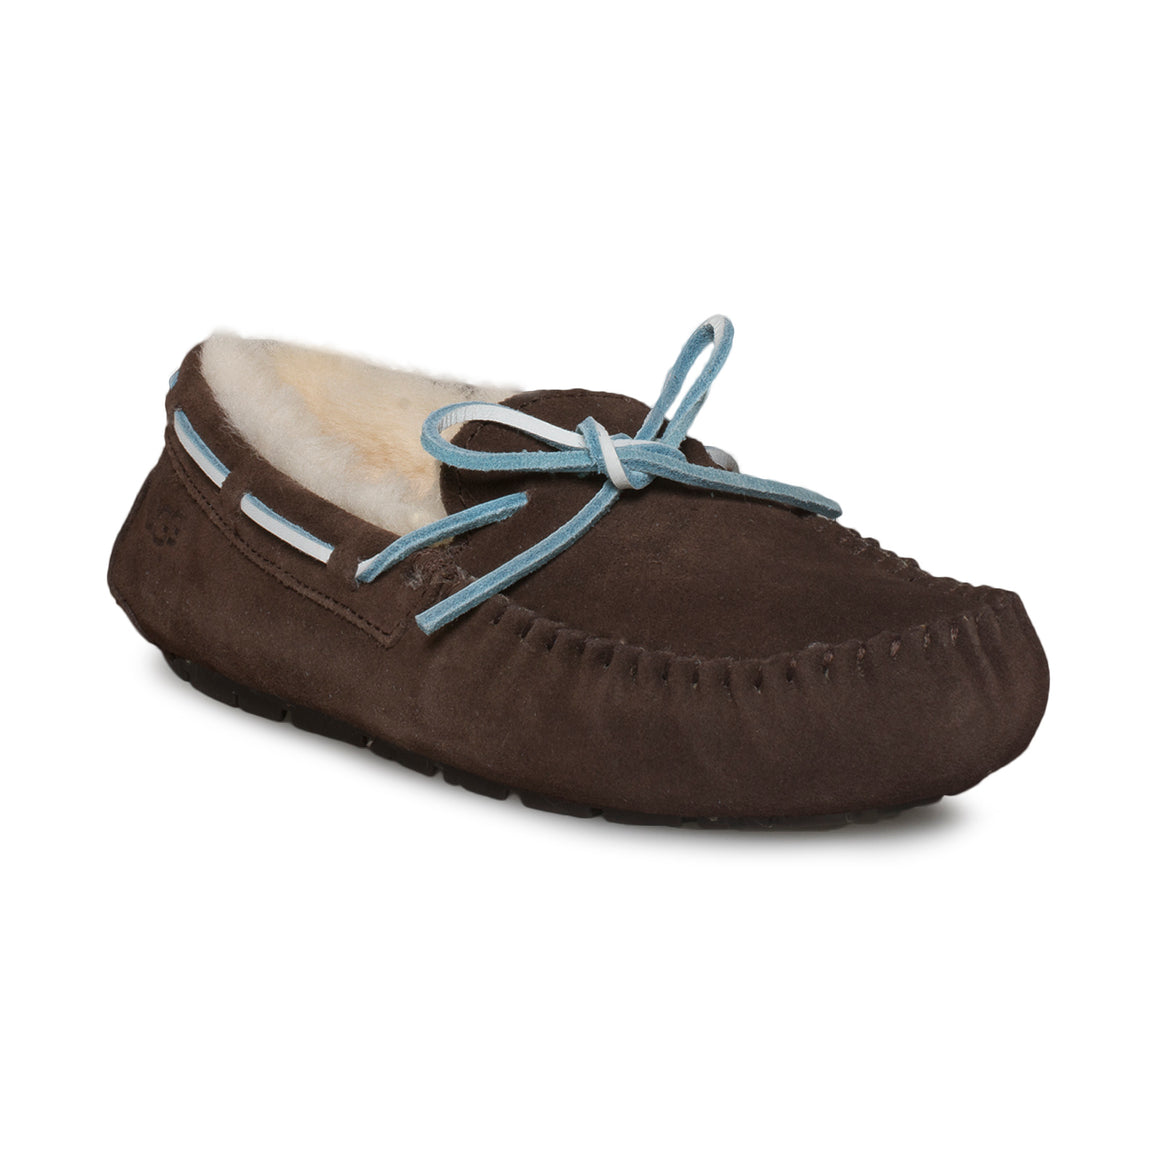 UGG Dakota Coffee Slippers - Women's